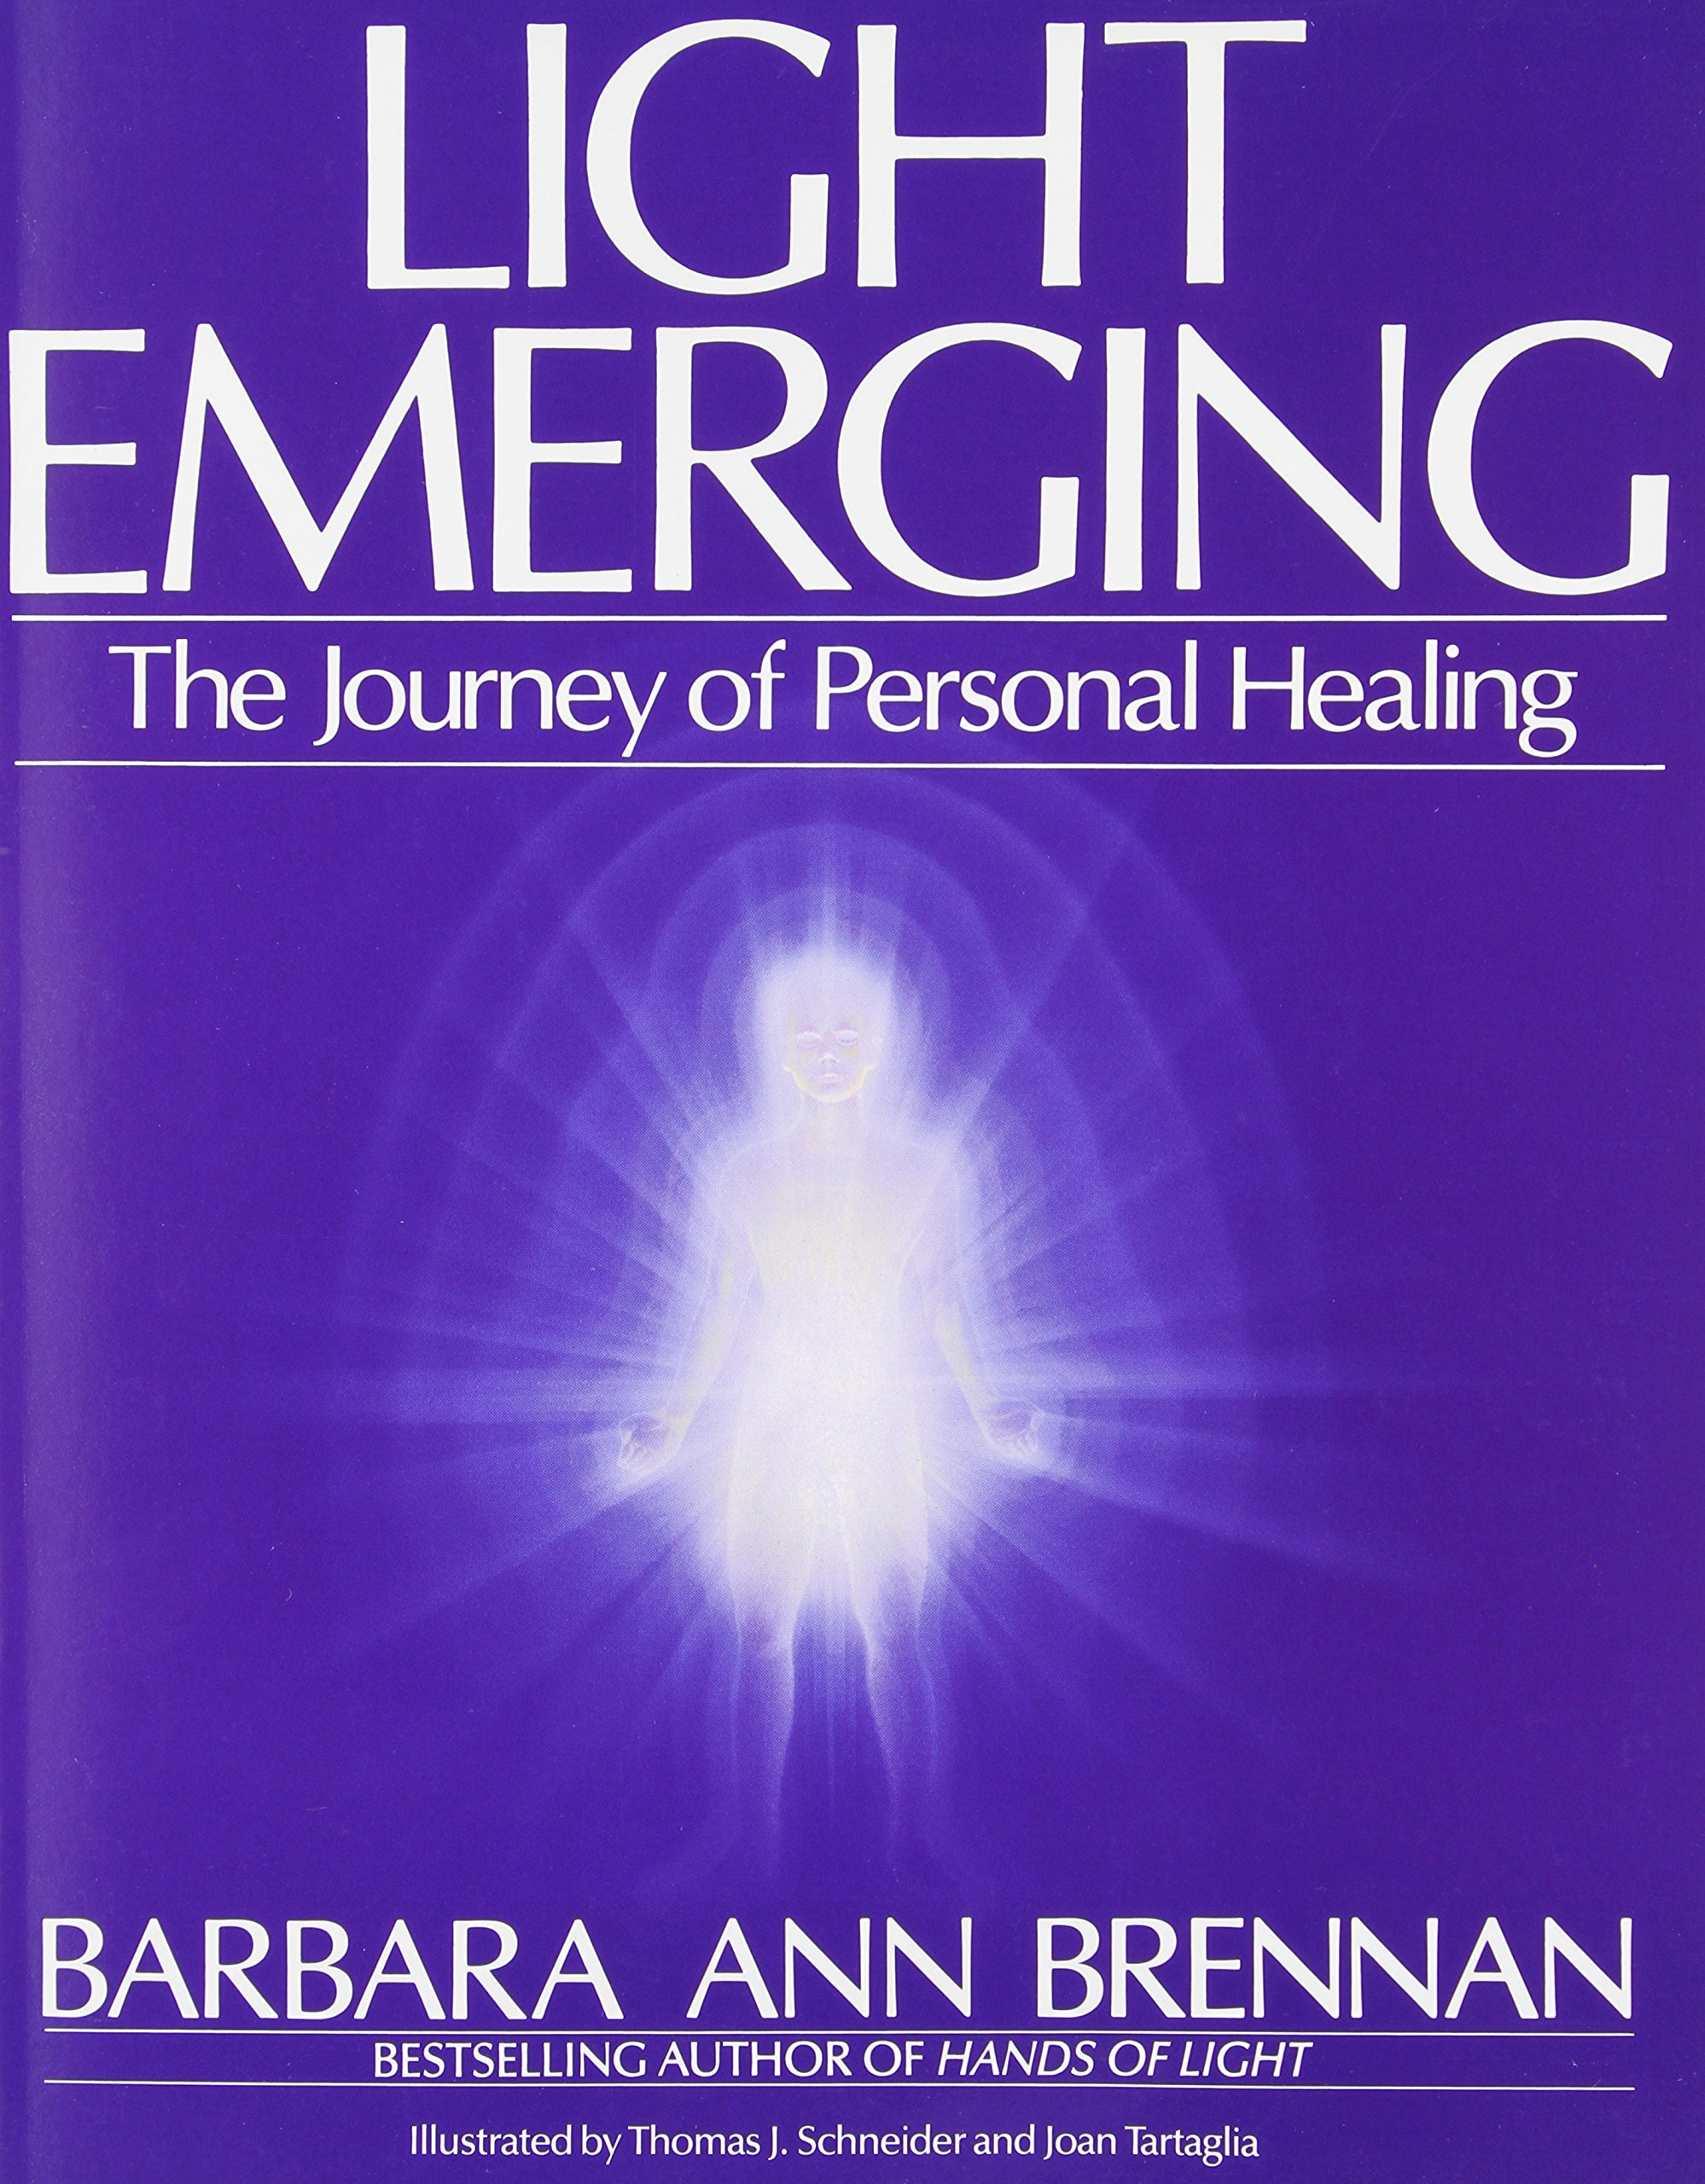 Buy Light Emerging: The Journey of Personal Healing